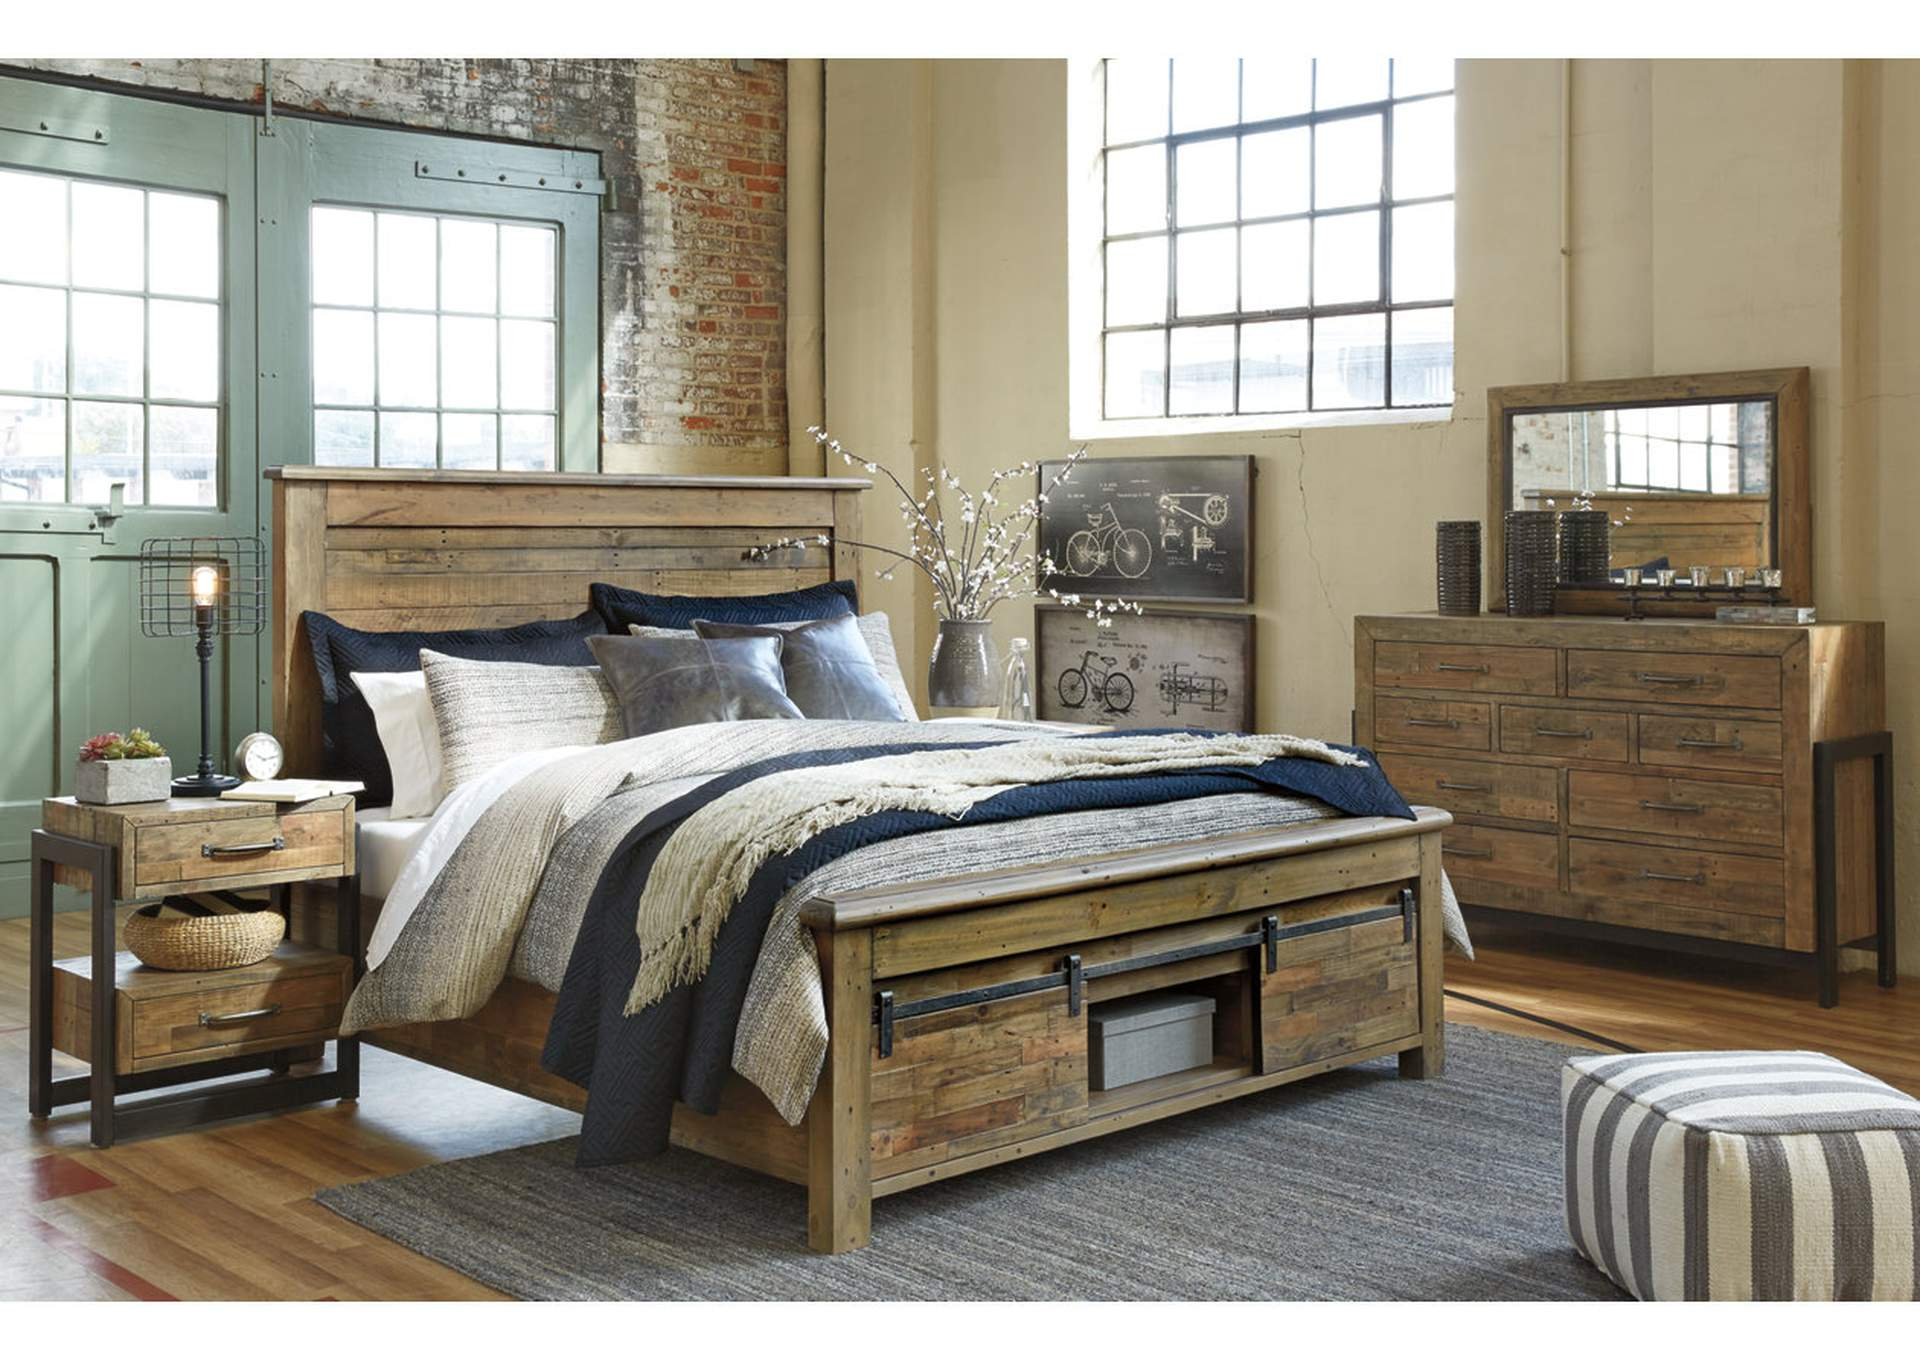 Sommerford Brown California King Storage Bed w/Dresser, Mirror & Nightstand,Signature Design By Ashley